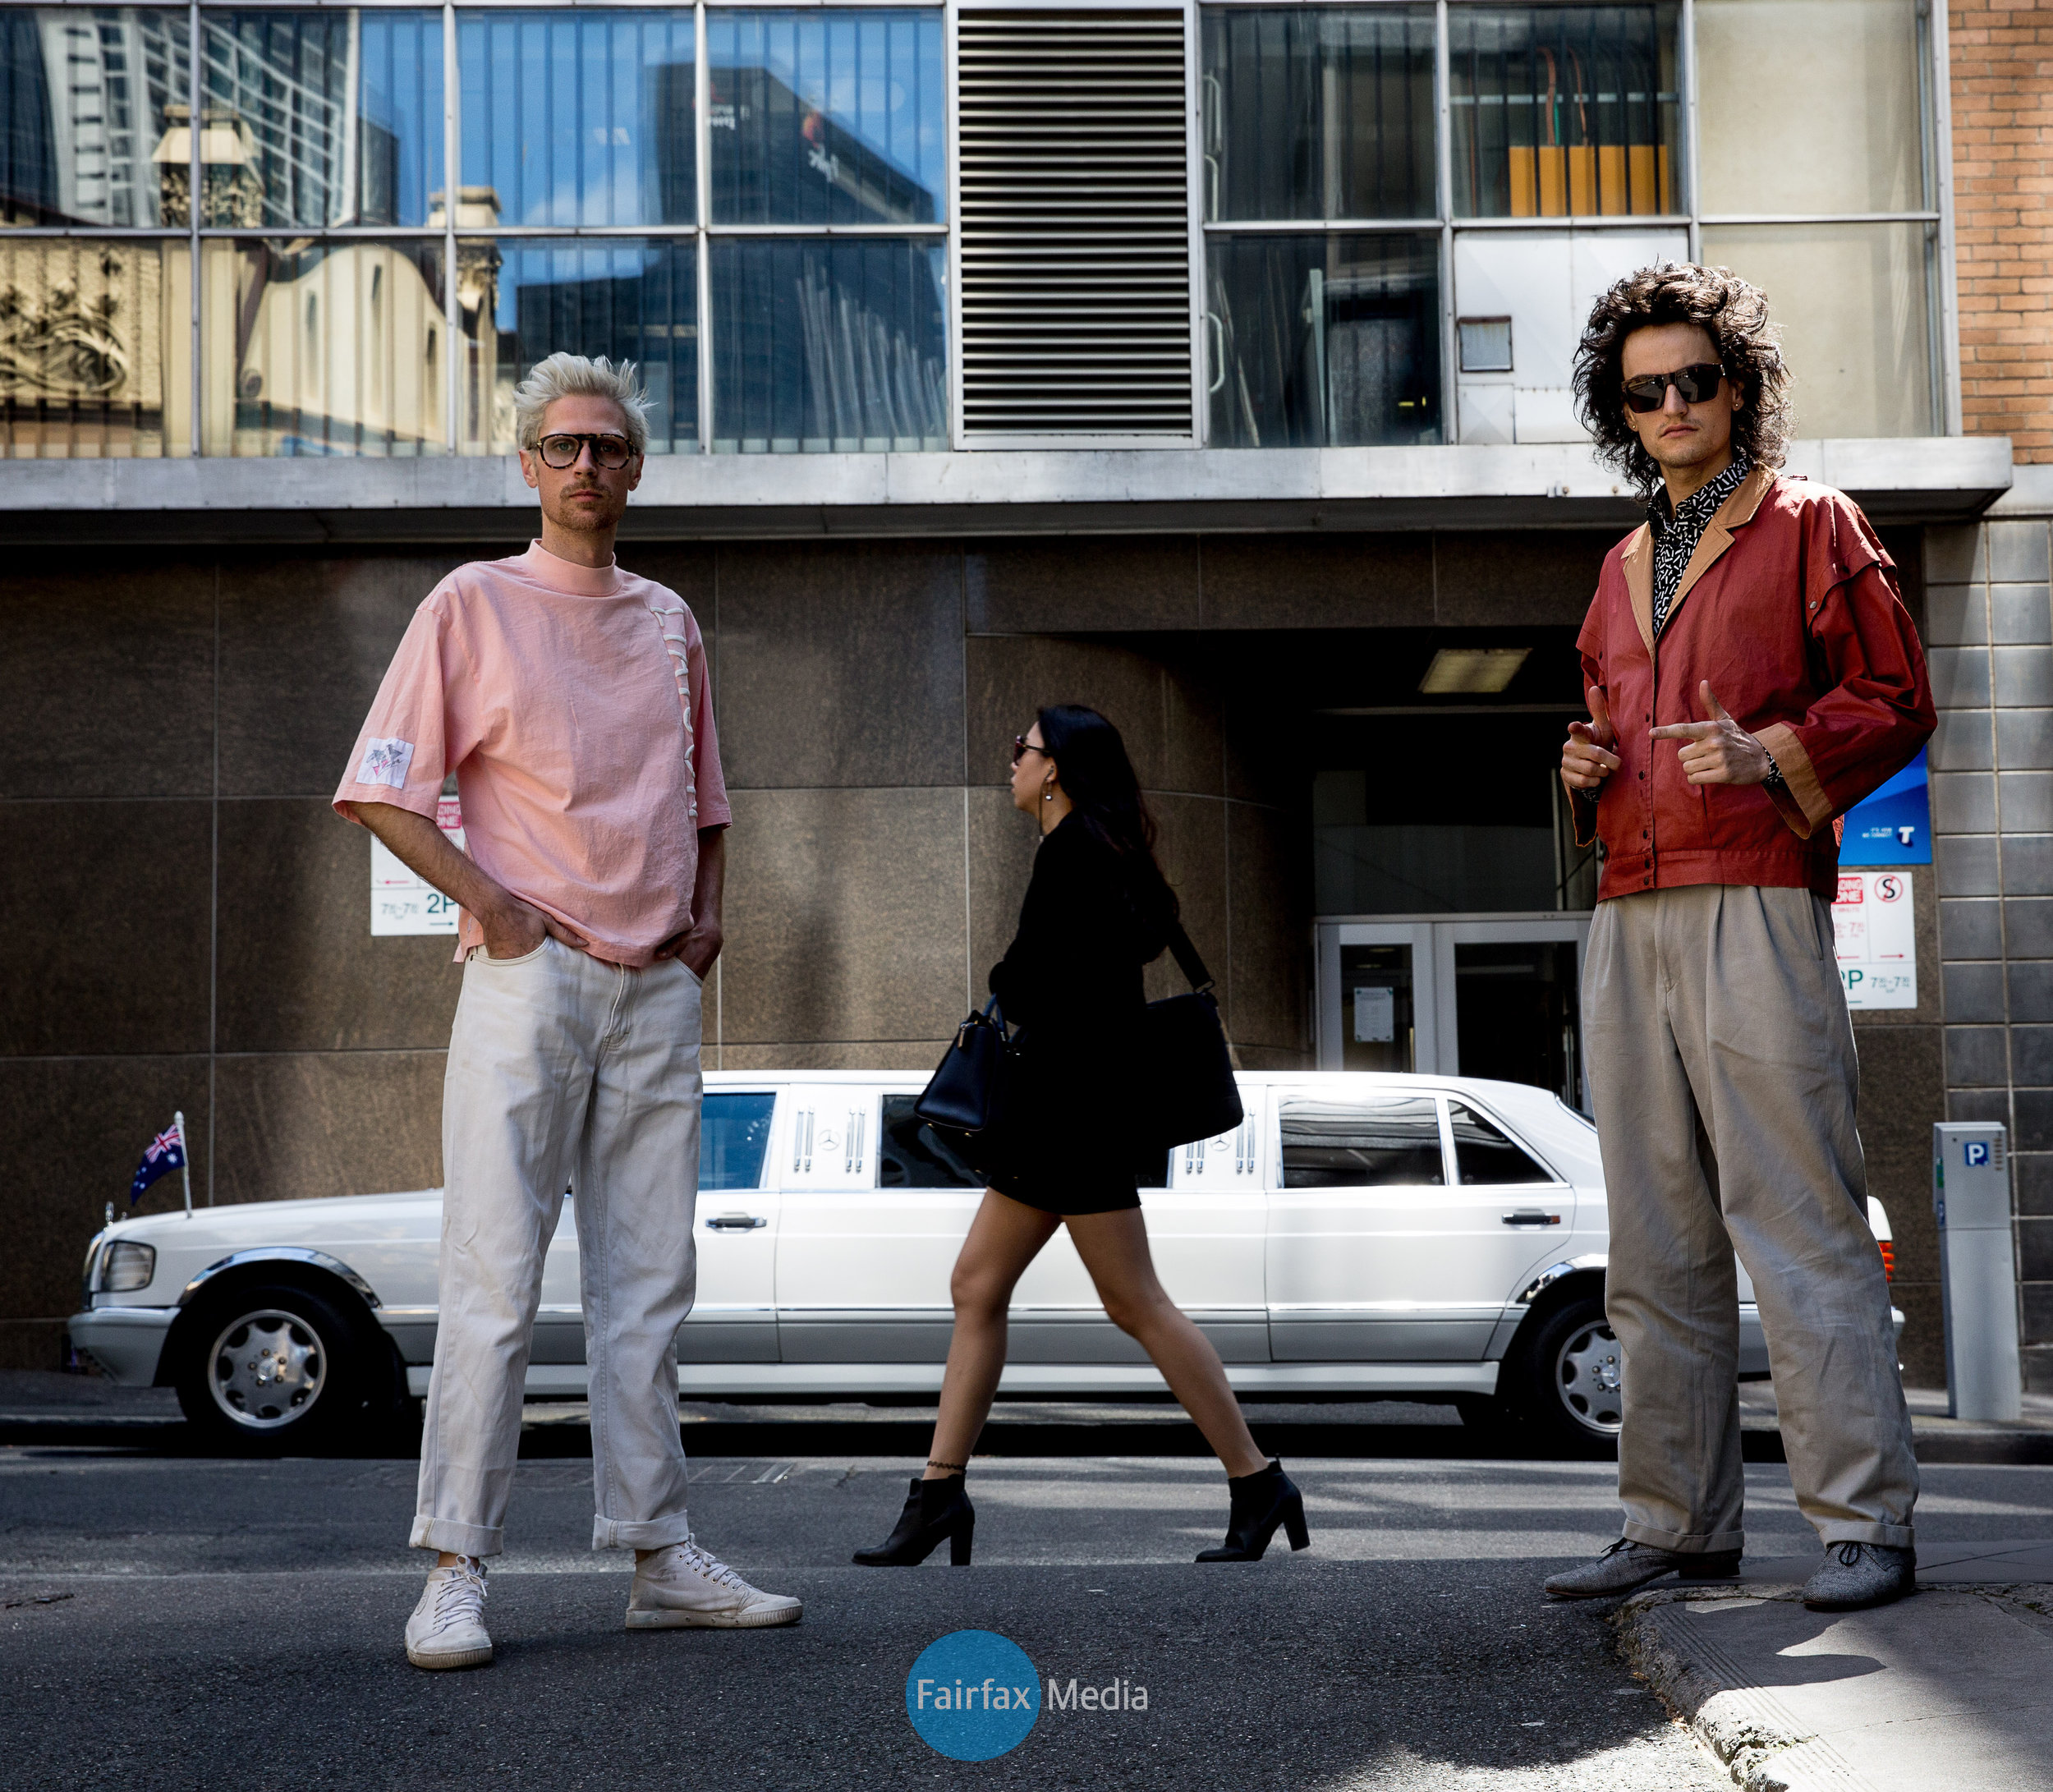 band members of client liaison posing downtown Melbourne city with limo in background